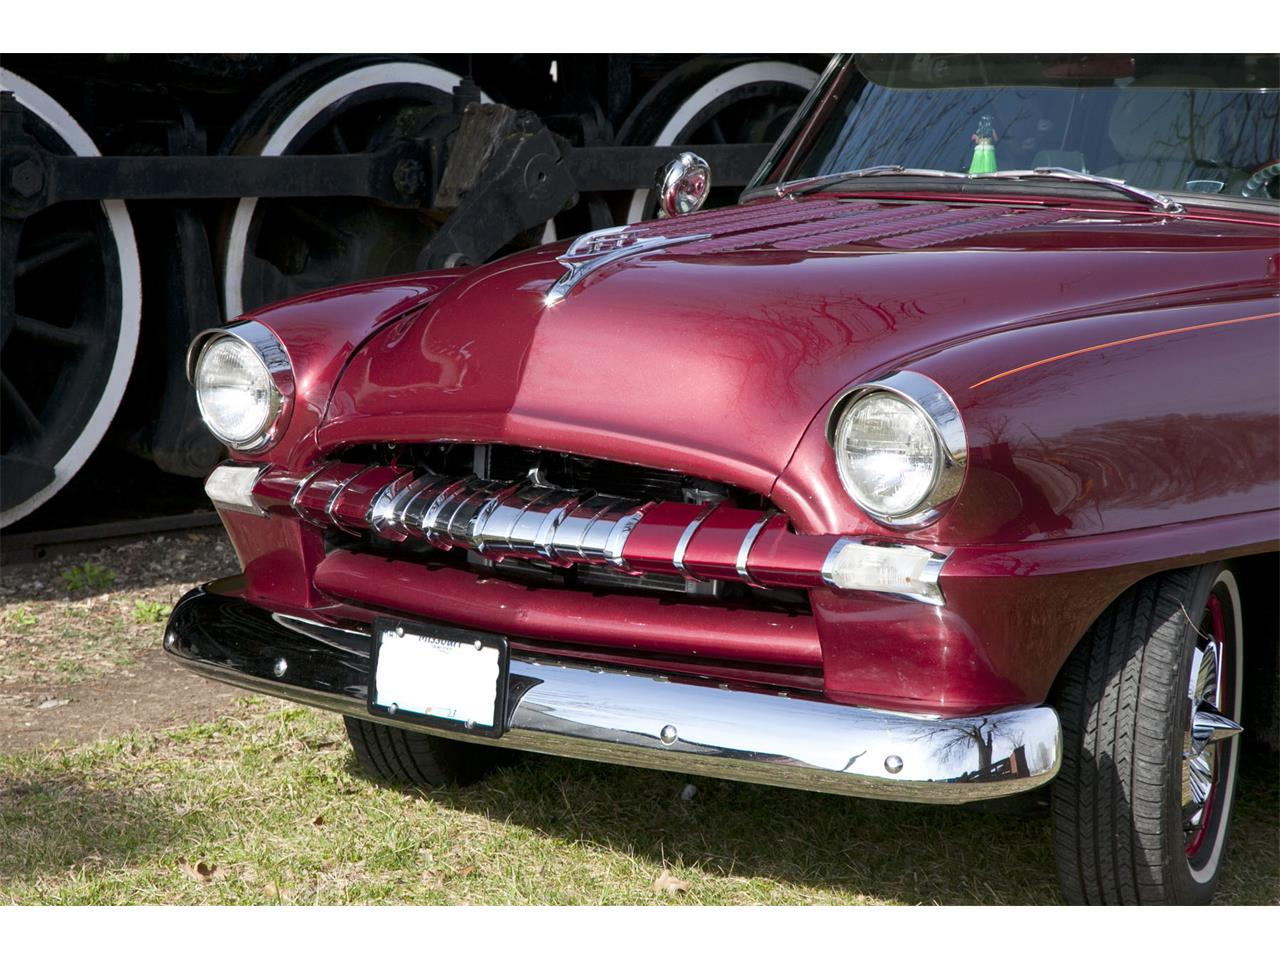 Large Picture of '53 Plymouth Suburban located in Missouri - $22,500.00 - MAKJ